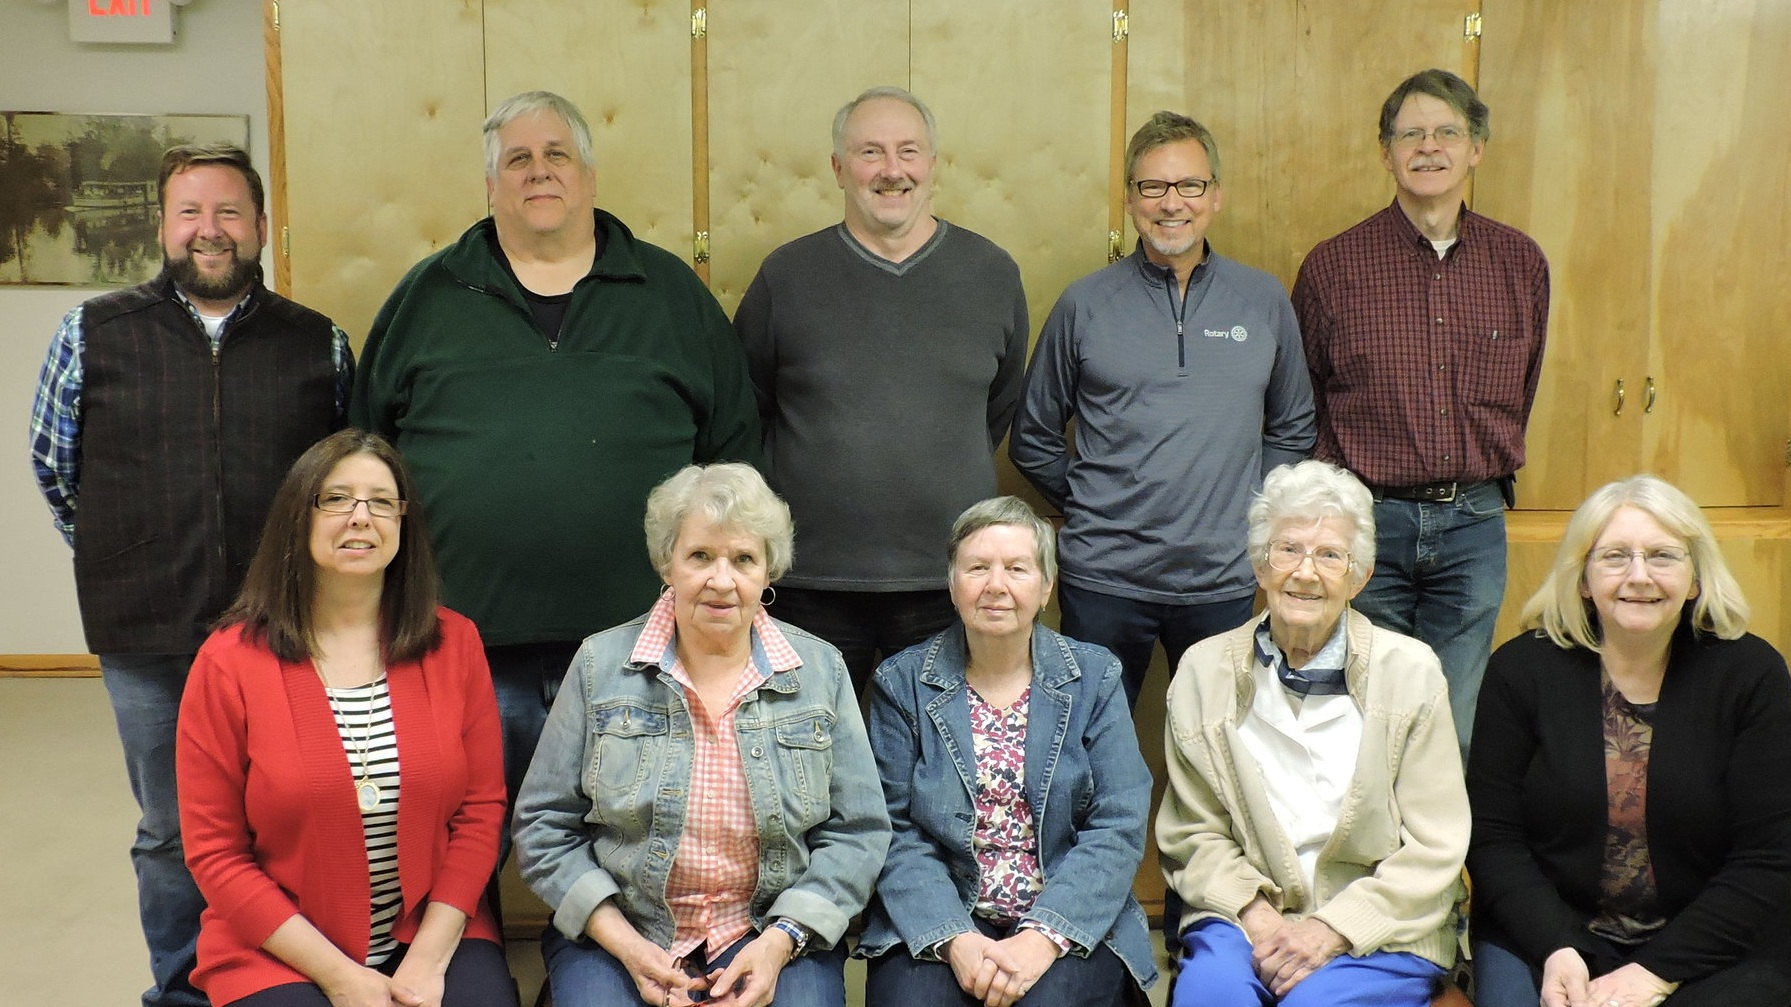 Image taken at April 9, 2019 Board of Directors Meeting                                 Standing: Scott Young, Marc Hettig, Greg Krell, David Moss, Fred Munchow Jr.                             Seated: Kandyce Hays, Clare Horneij, Carabeth Culby, Sally Williams, Cindy Young